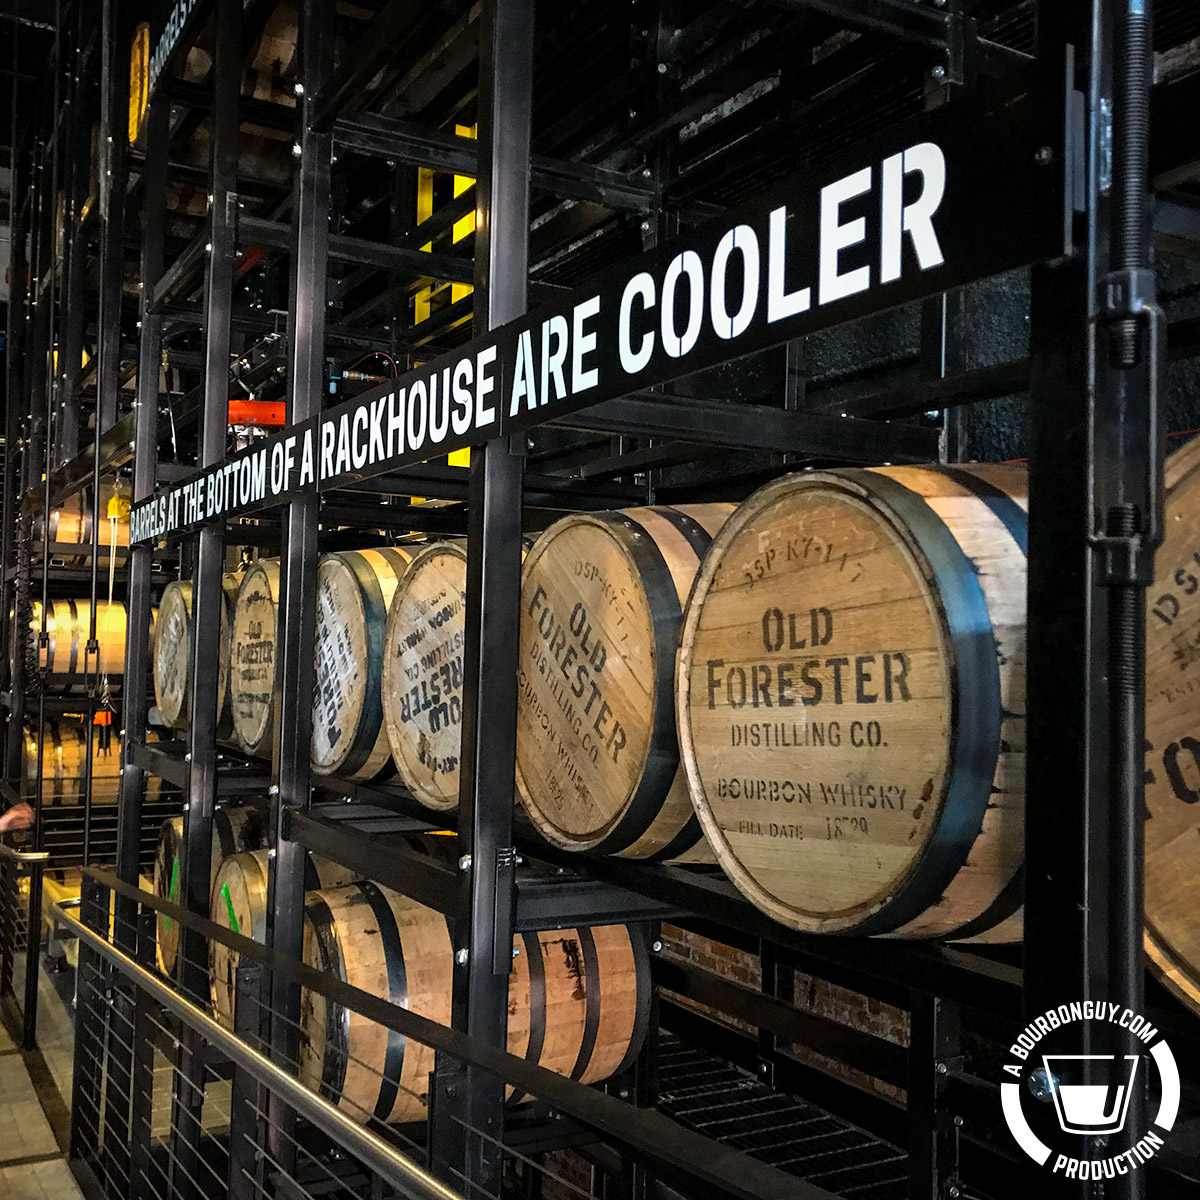 Old Forester Distilling Co. Aging Barrels